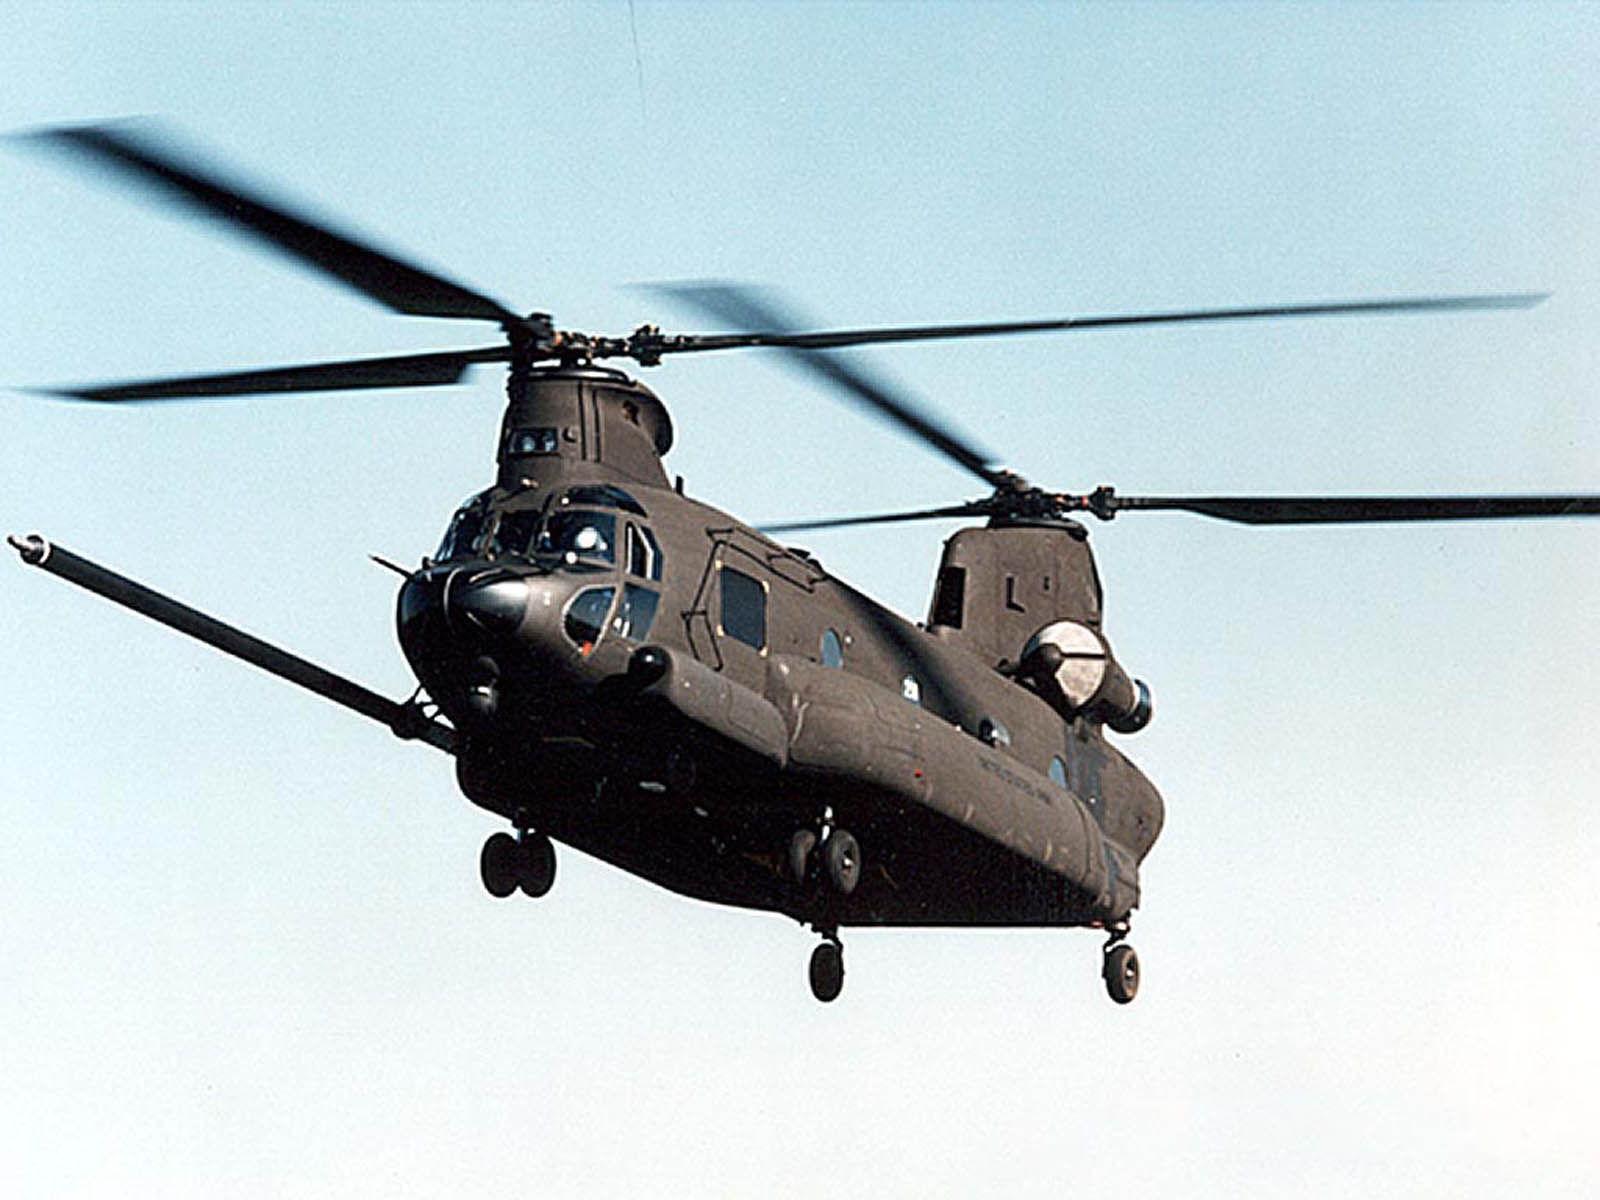 Helicopter Desktop Wallpapers Military Helicopter Desktop Backgrounds 1600x1200